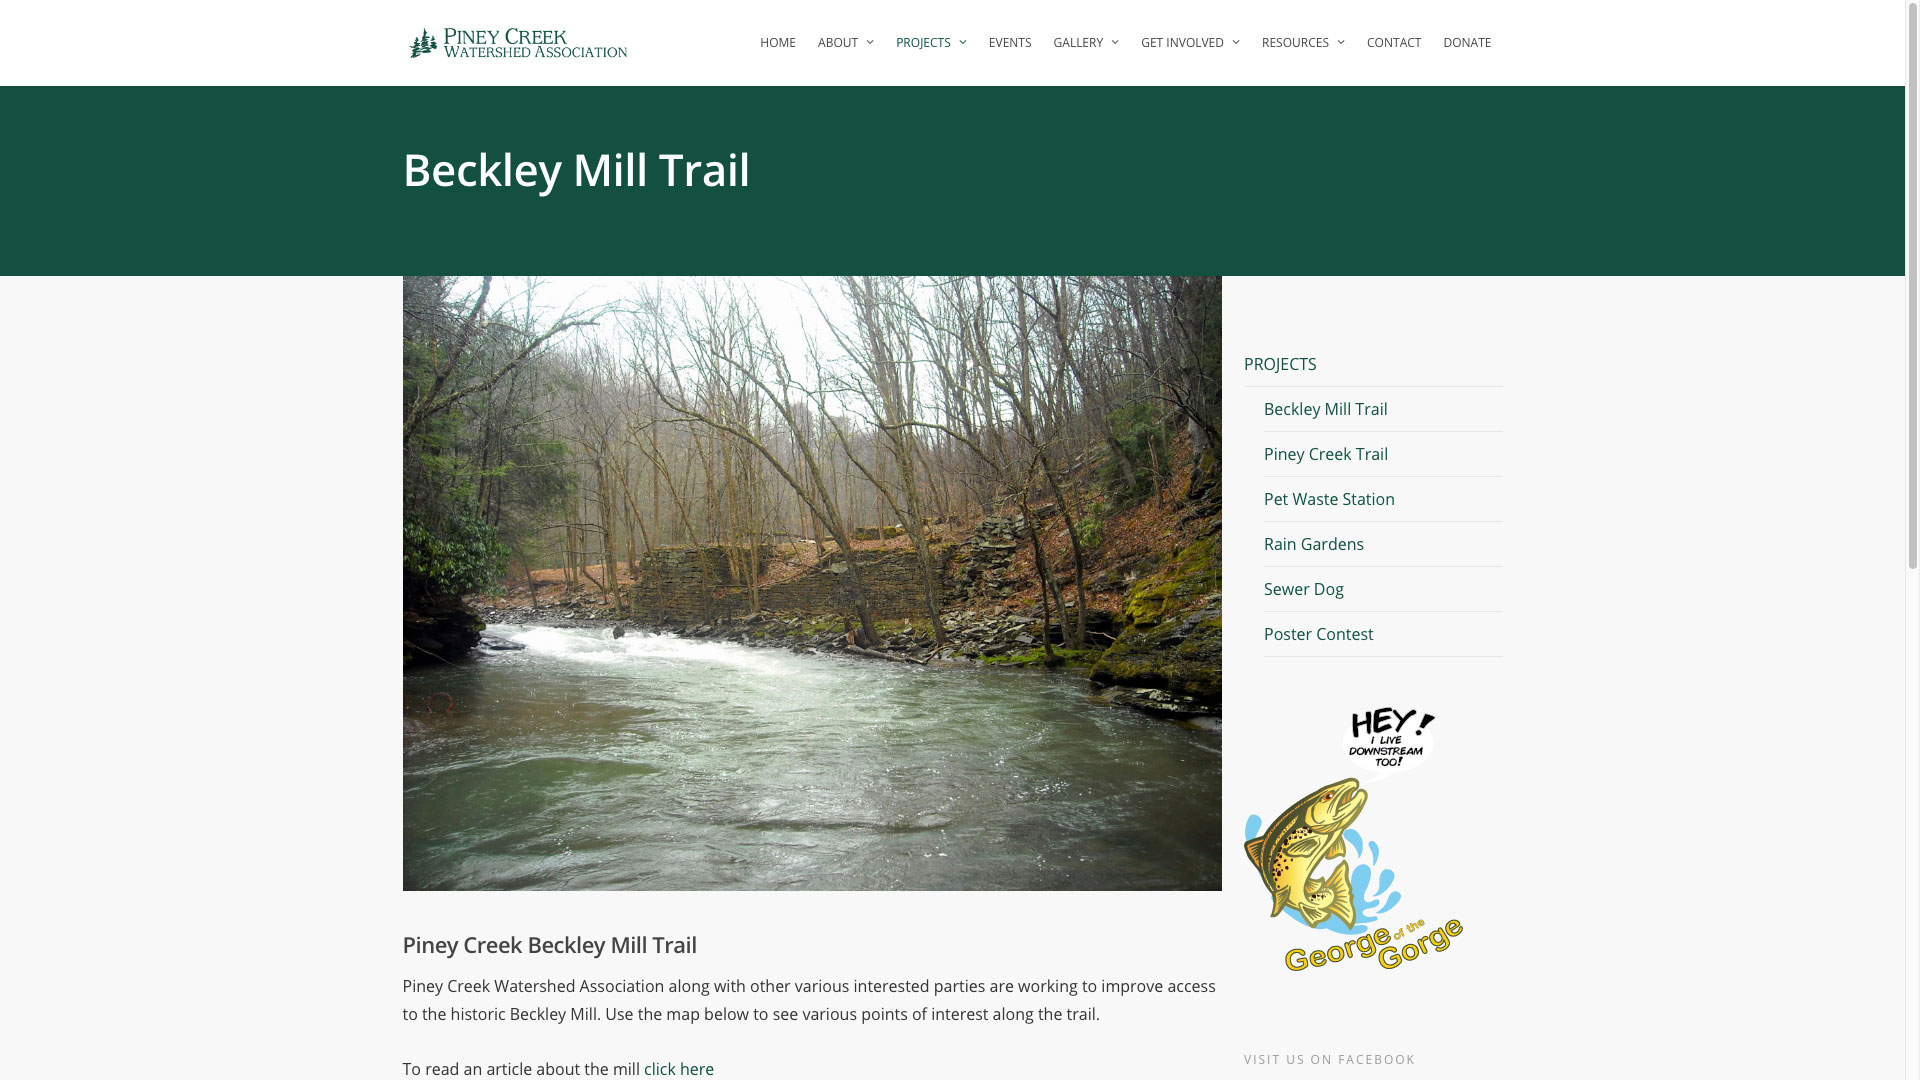 beckley-mill-trail-web-design